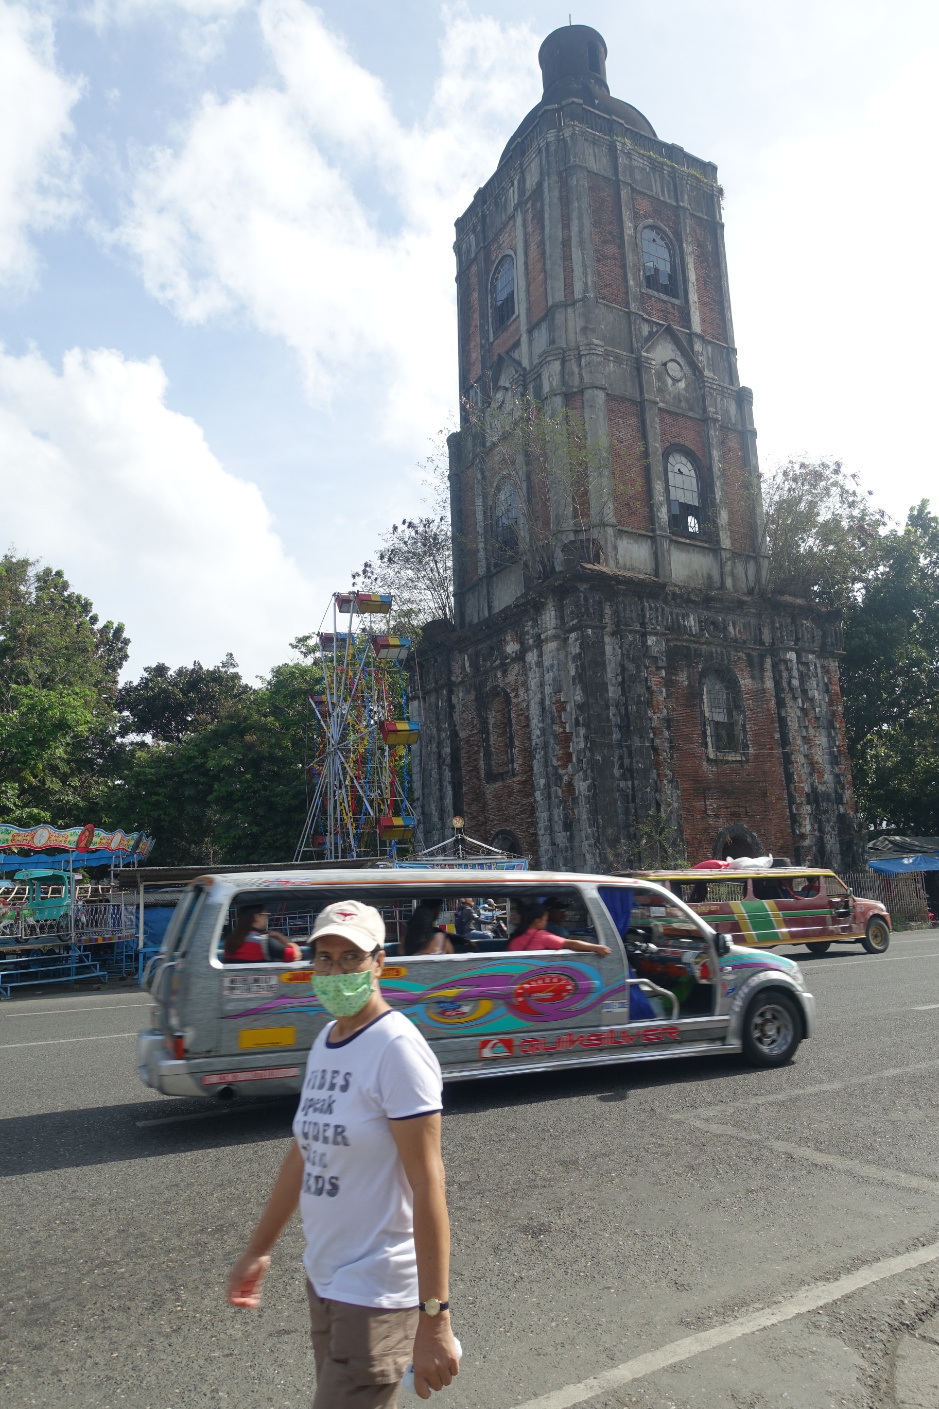 Iloilo contrasts: Jaro Metropolitan Cathedral and Jeepney transport vehicles